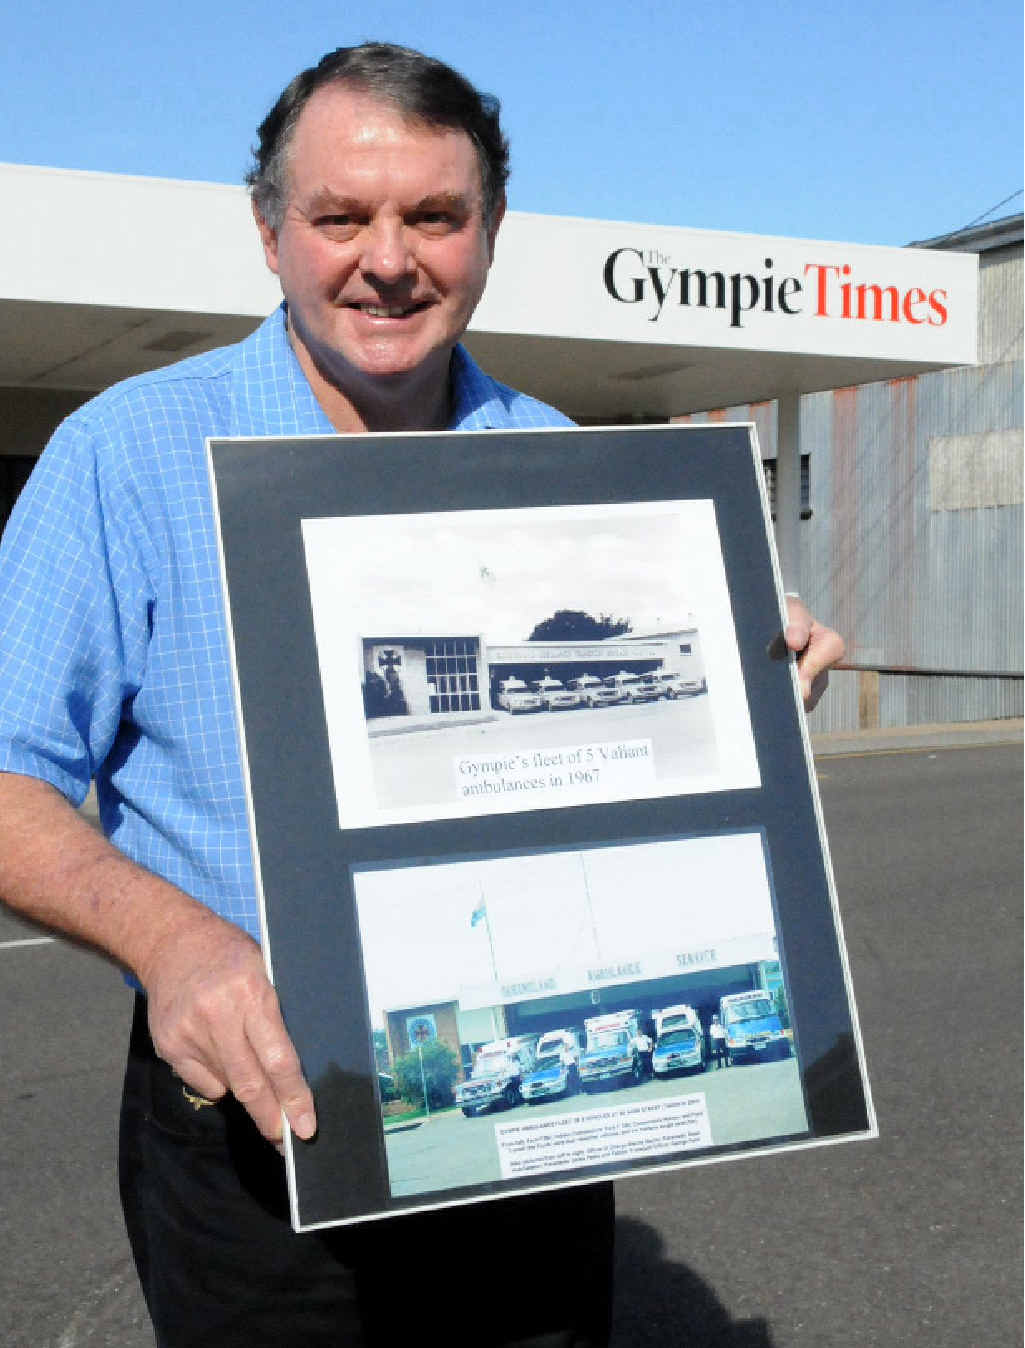 Wayne Sachs with old ambulance building pictorial history that he donated to The Gympie Times this week.